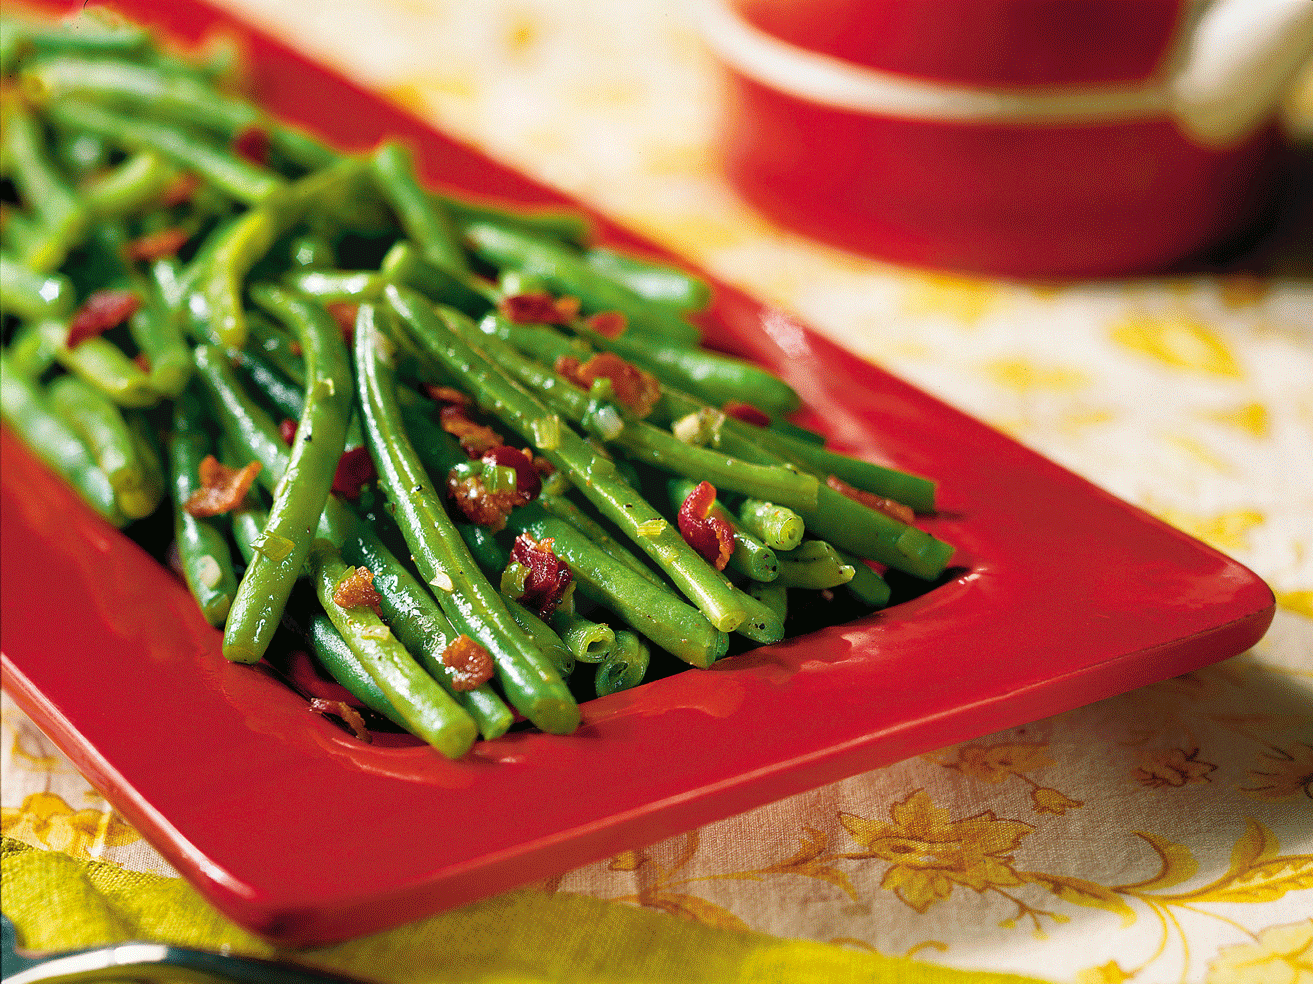 Sautéed green beans with bacon SL (enlarged)